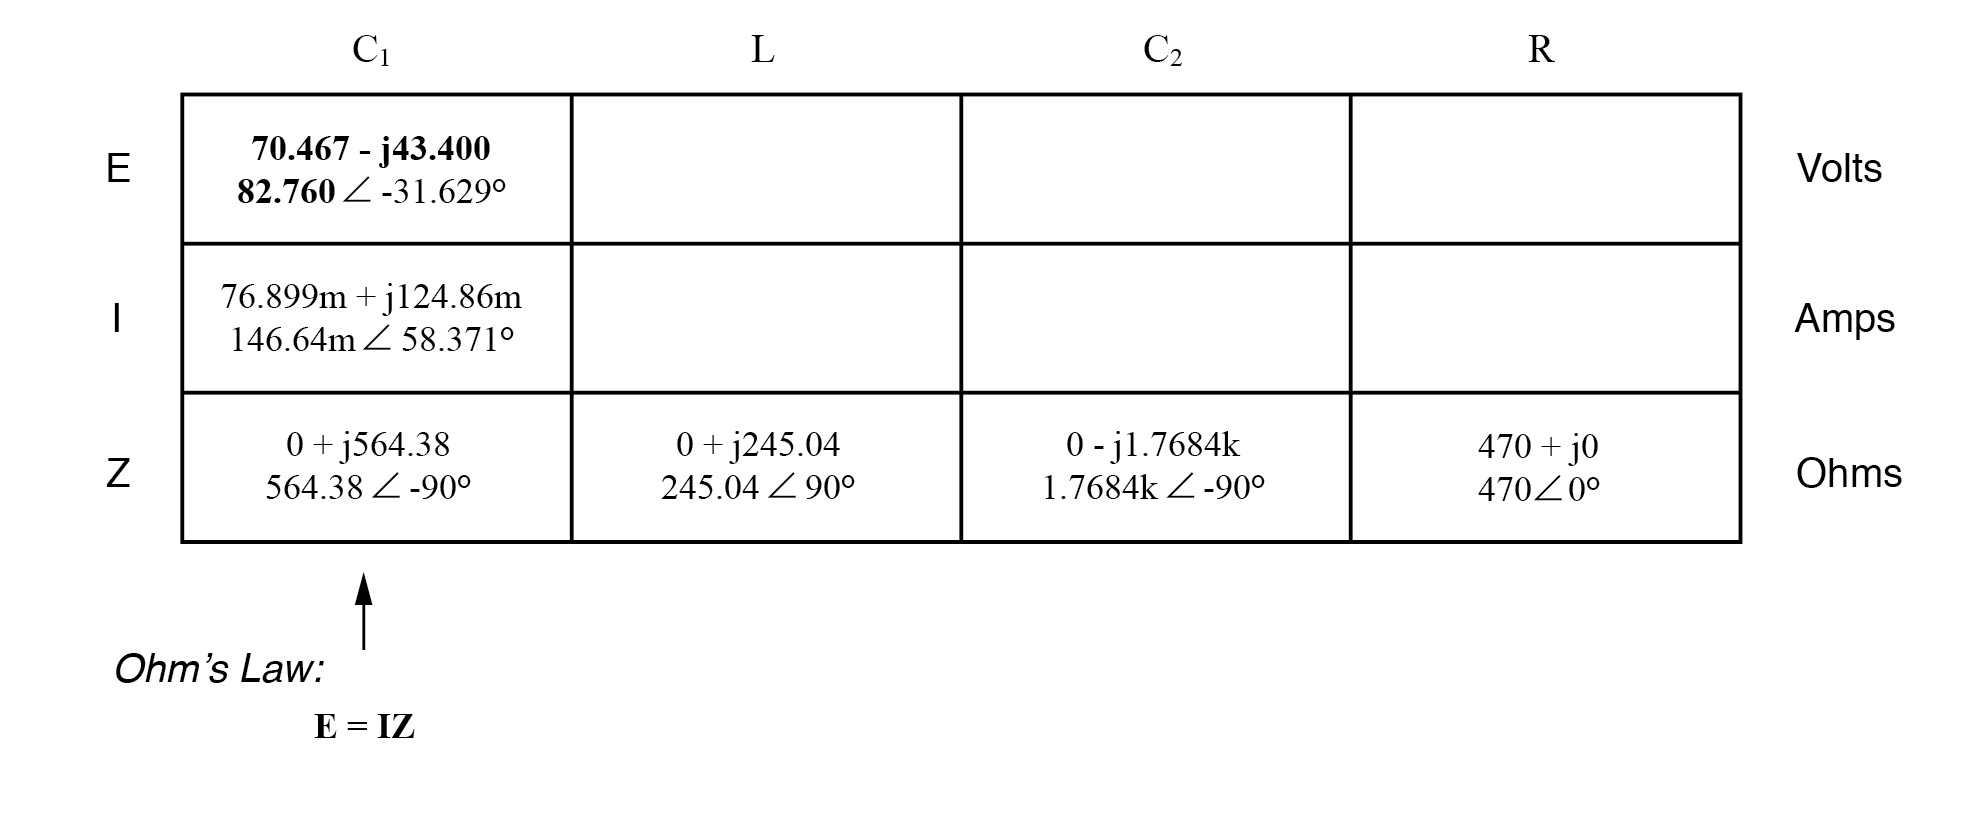 initial values in table 7